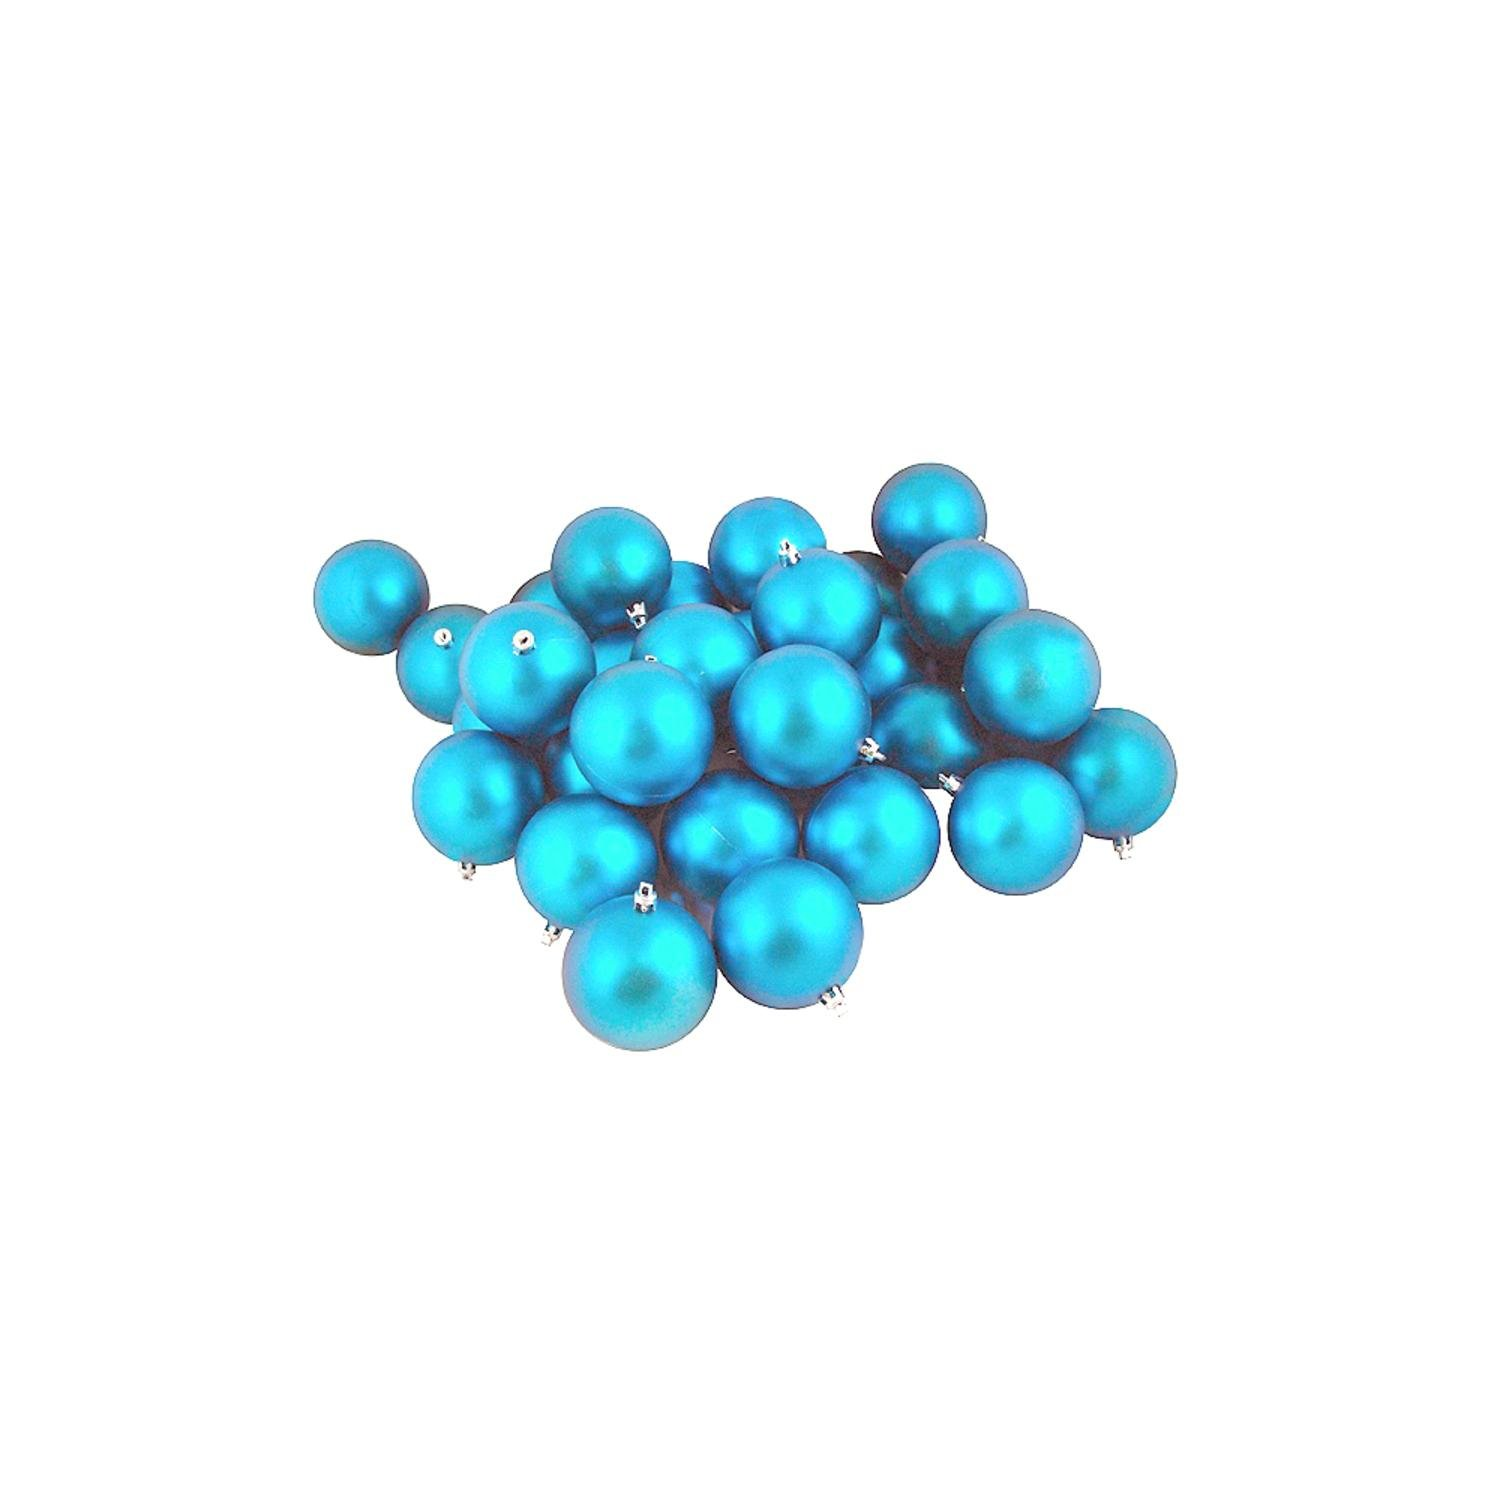 Northlight 32 Count Shatterproof Matte Turquoise Blue Christmas Ball Ornaments, 3.25''